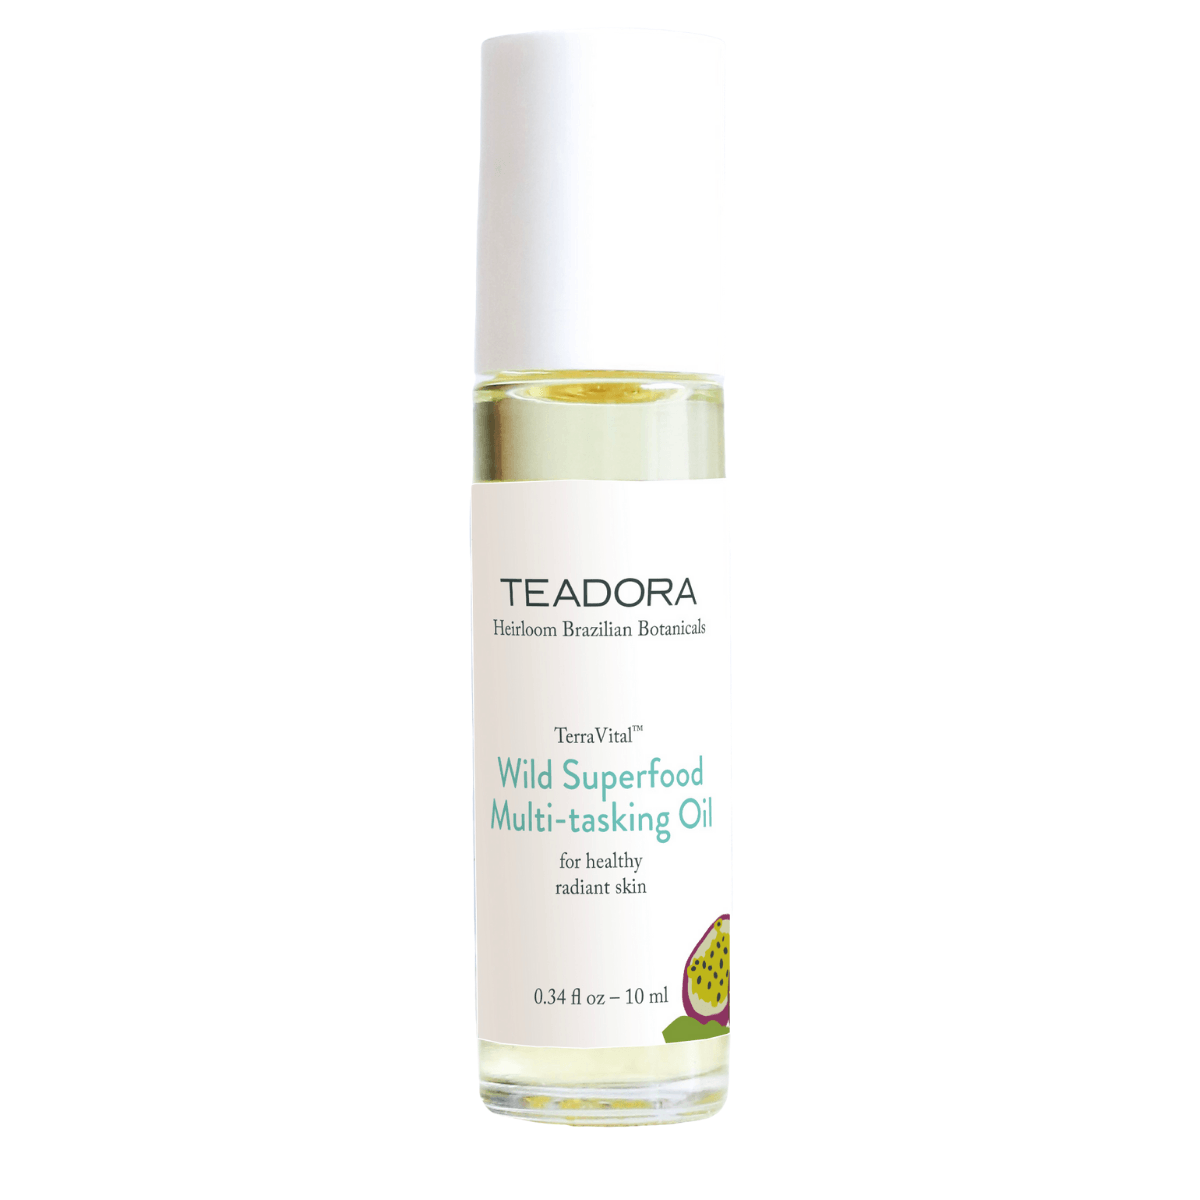 Wild Superfood Multi-Tasking Oil - Teadora